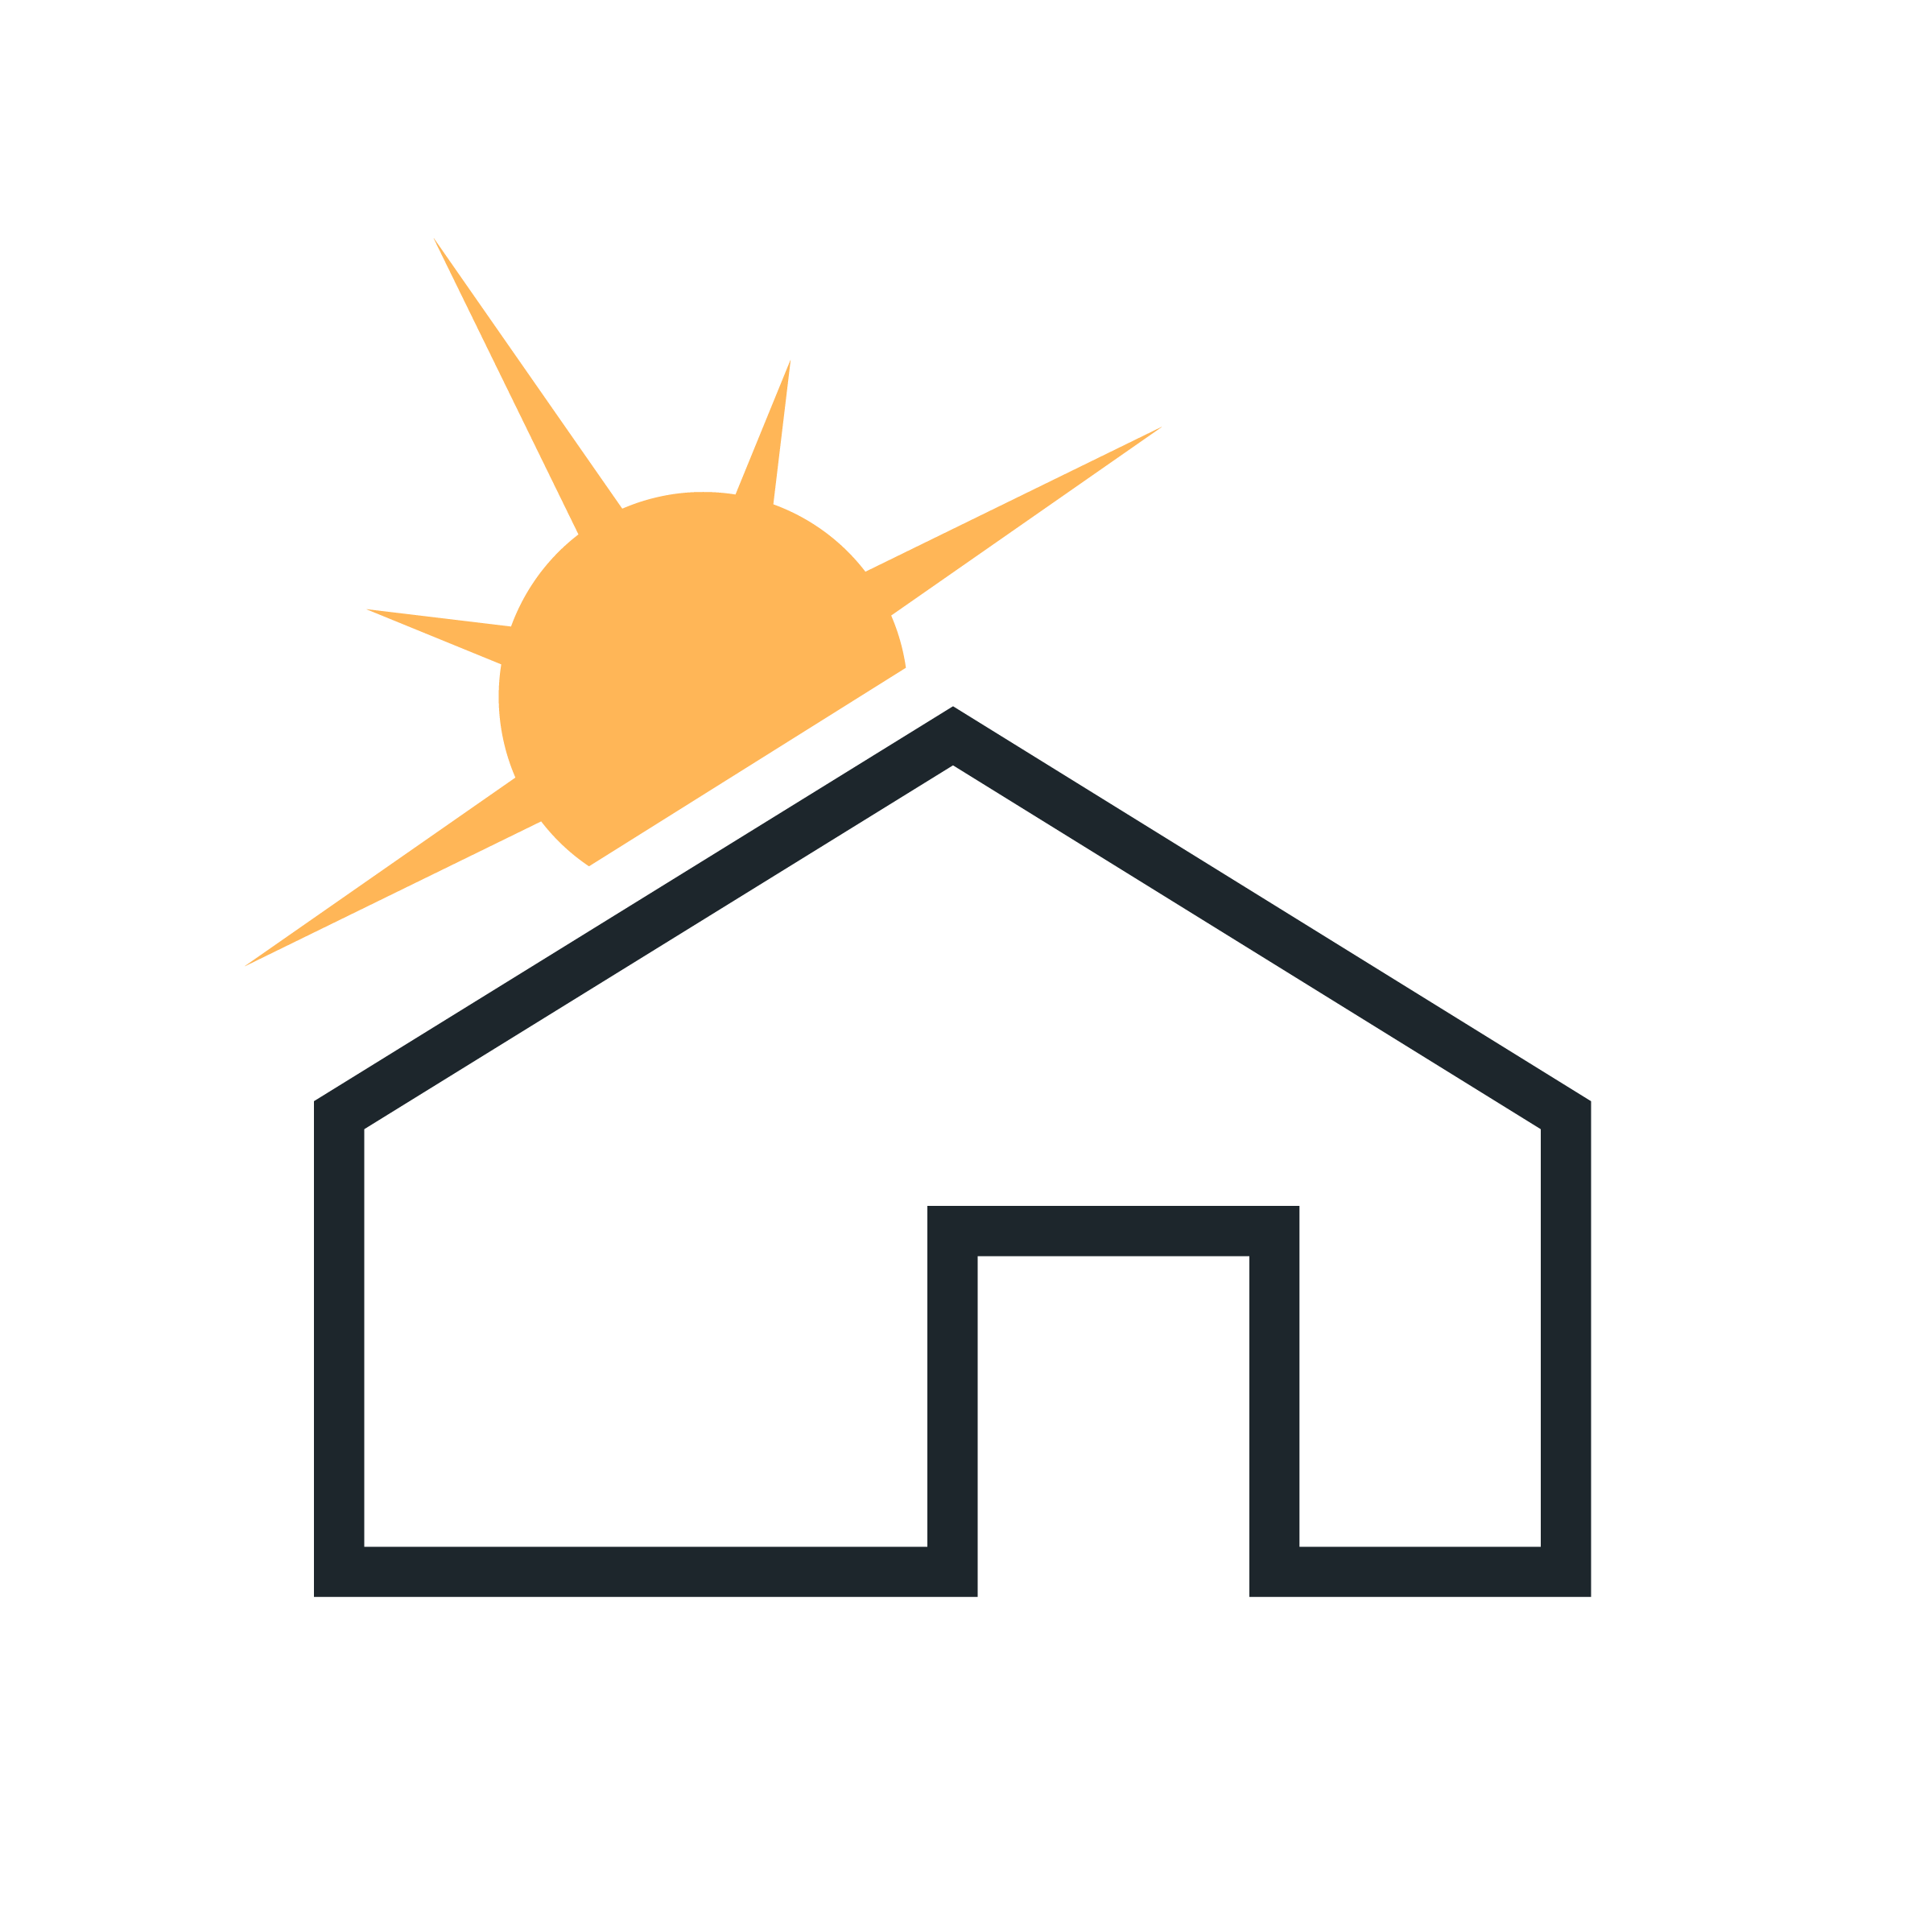 solcast_icon_rooftop.png